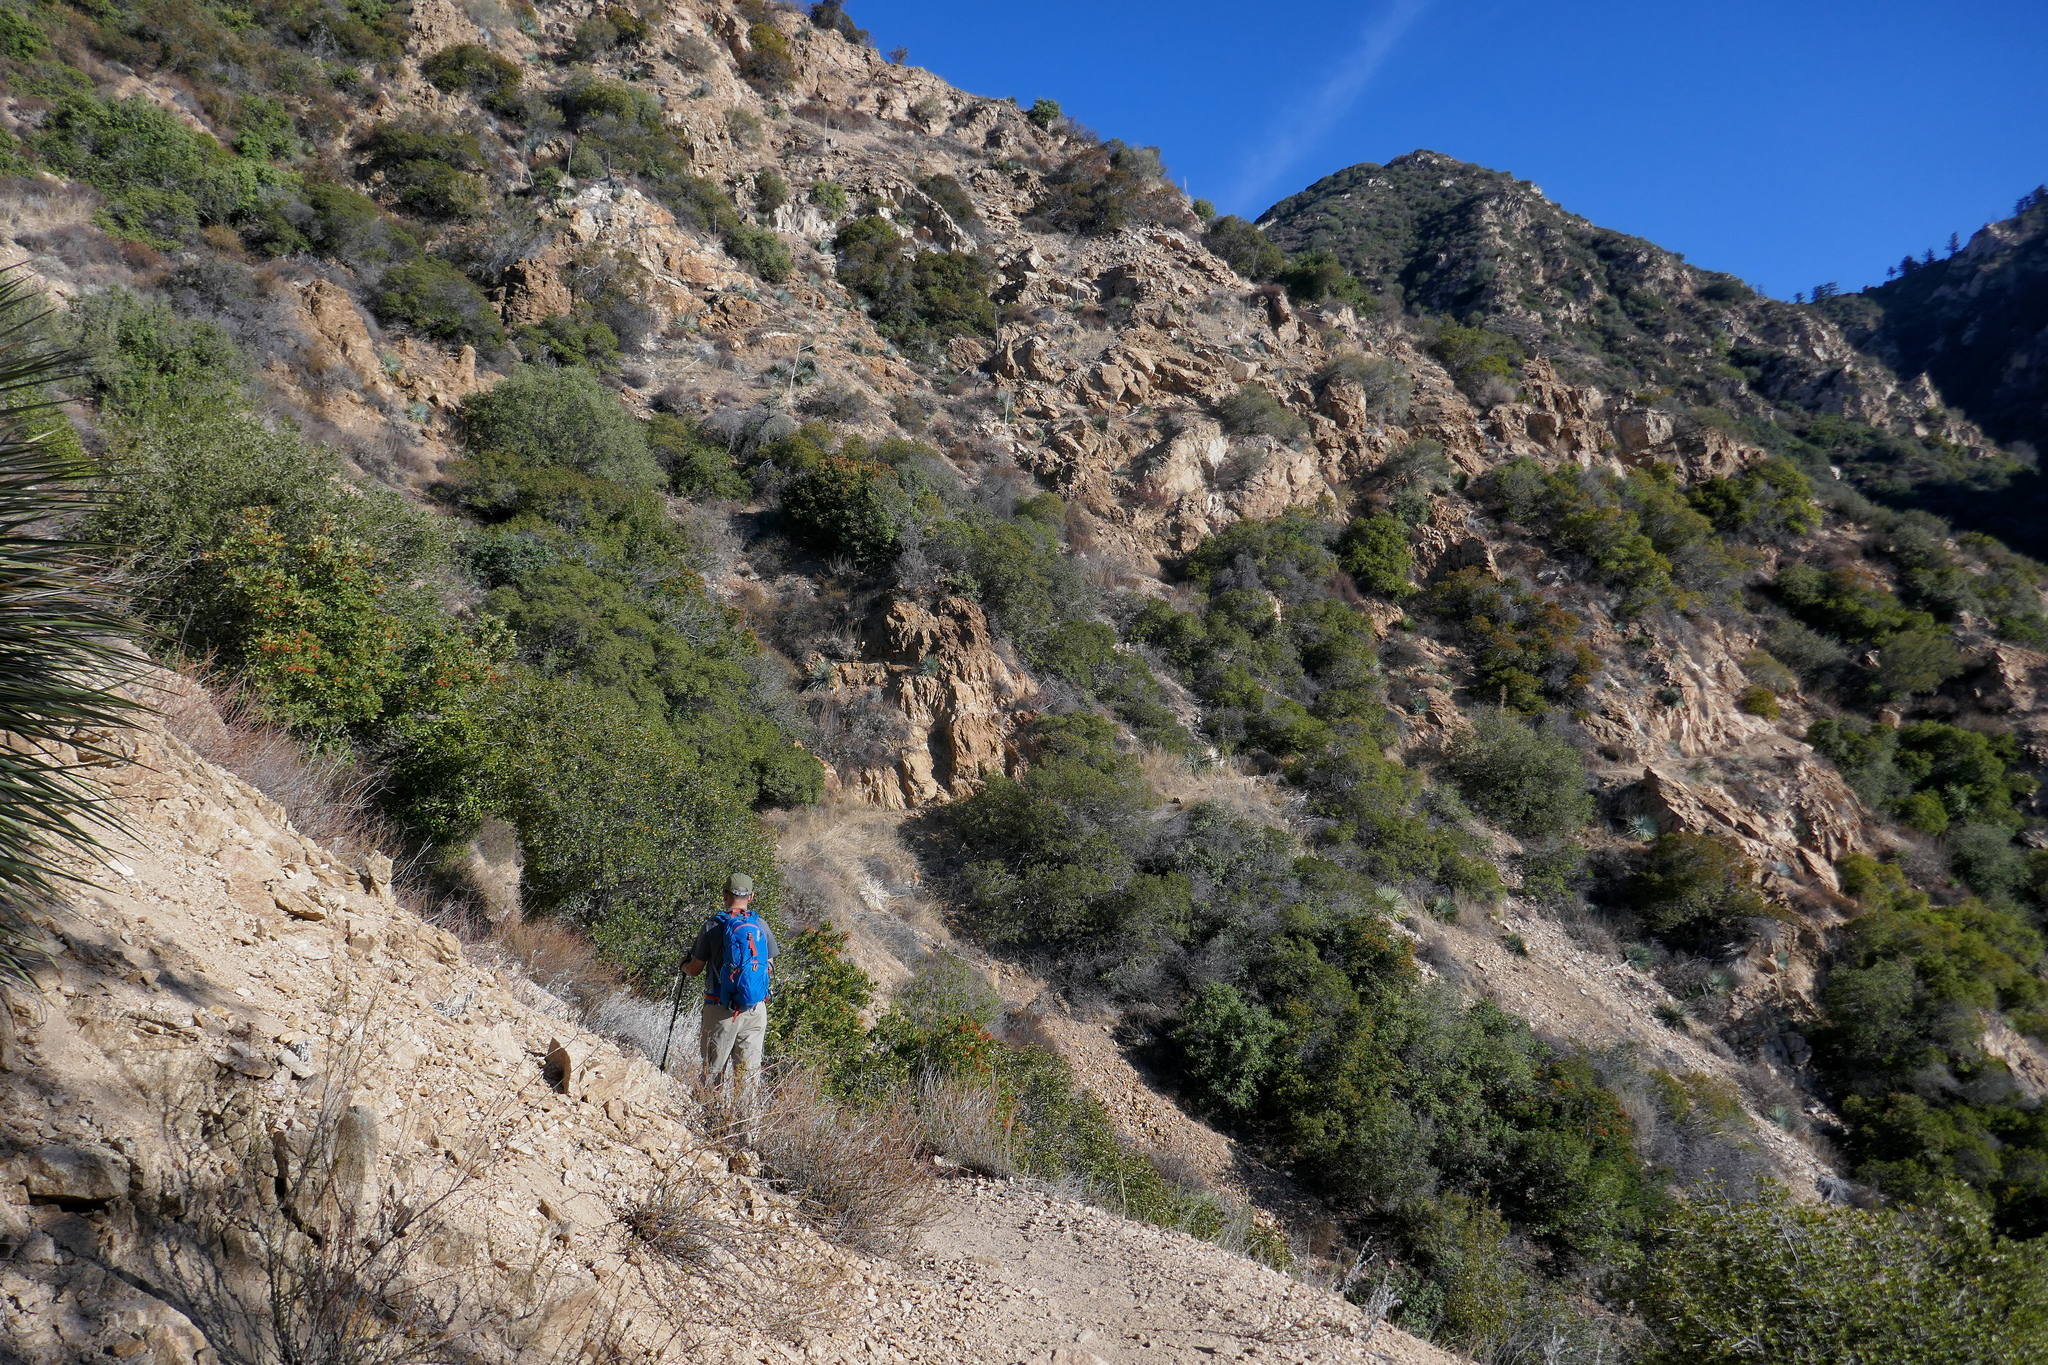 Heading up the Castle Canyon Trail to Inspiration Point.